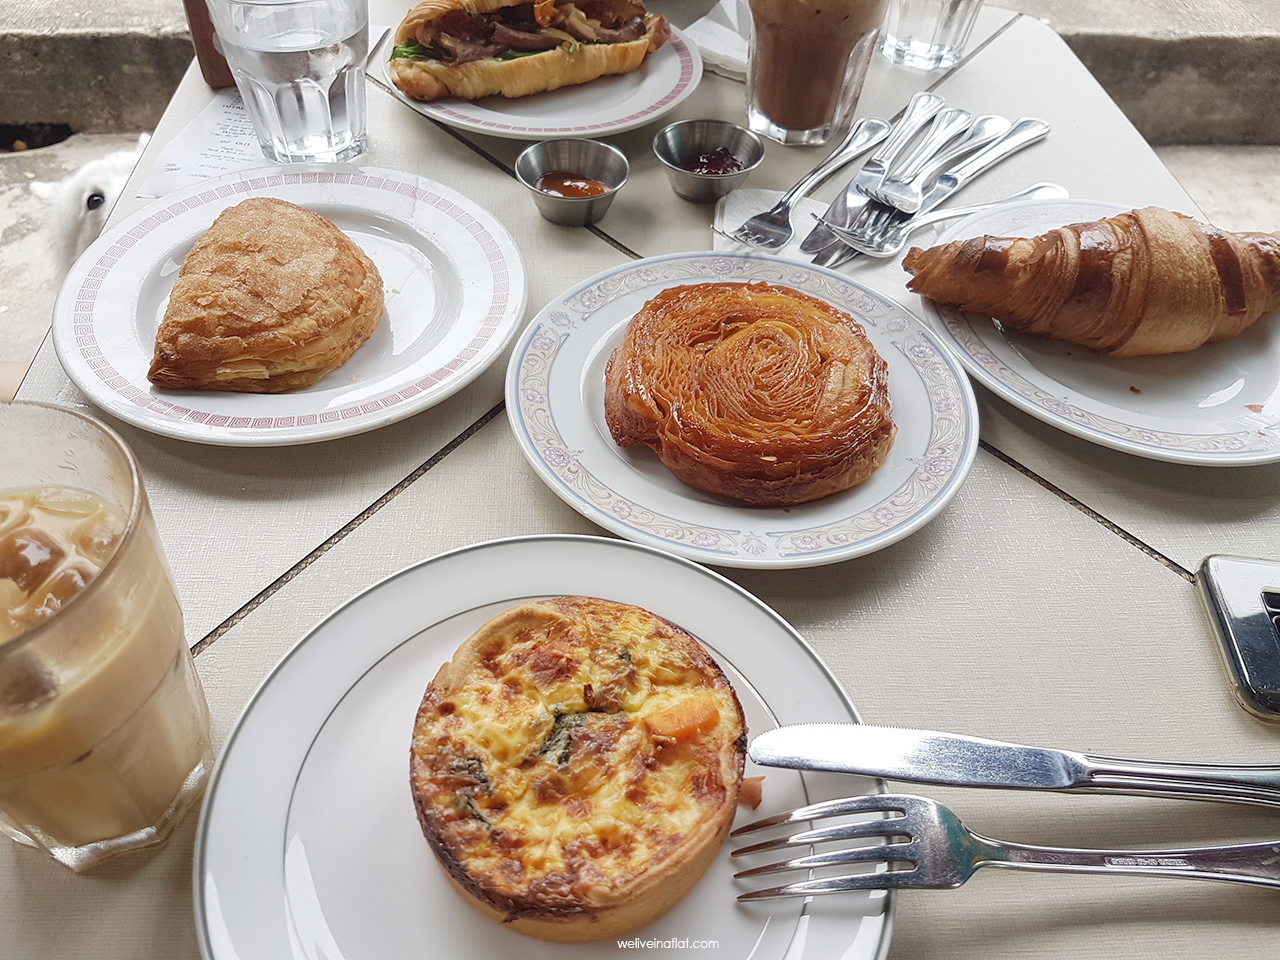 dog-friendly cafe - Tiong Bahru Bakery table spread - bread and other baked goods